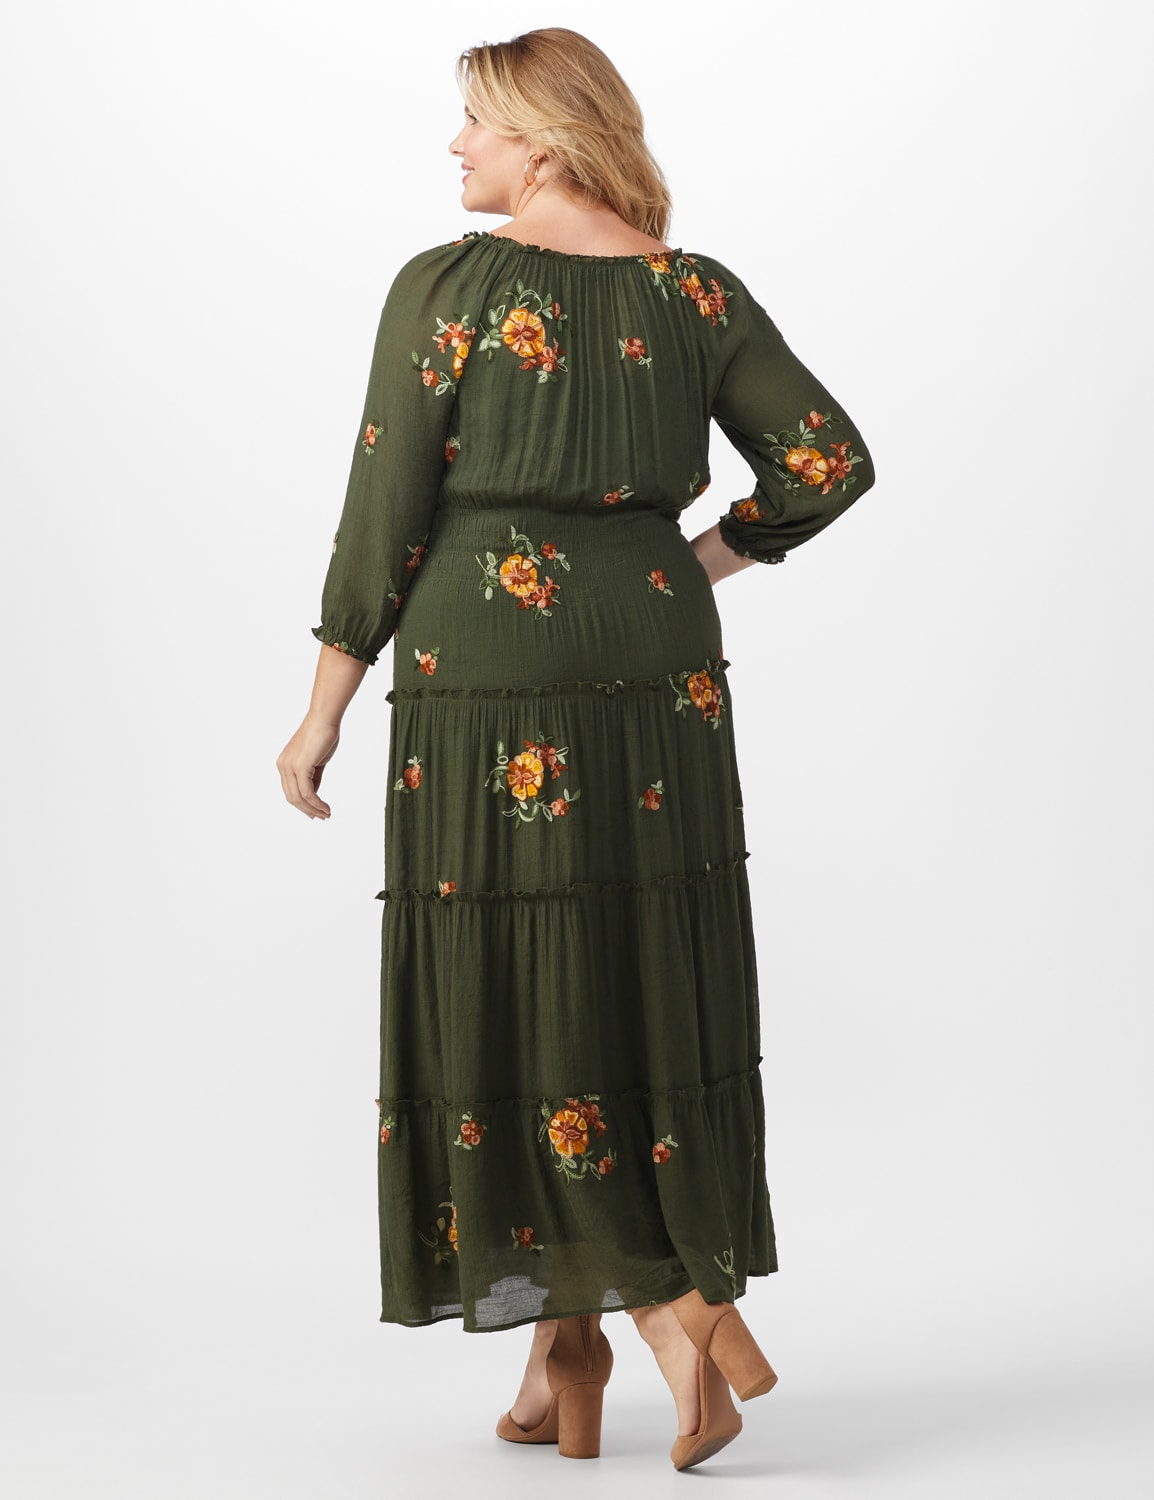 Embroidered Texture Peasant Dress-Plus - dark olive - Back